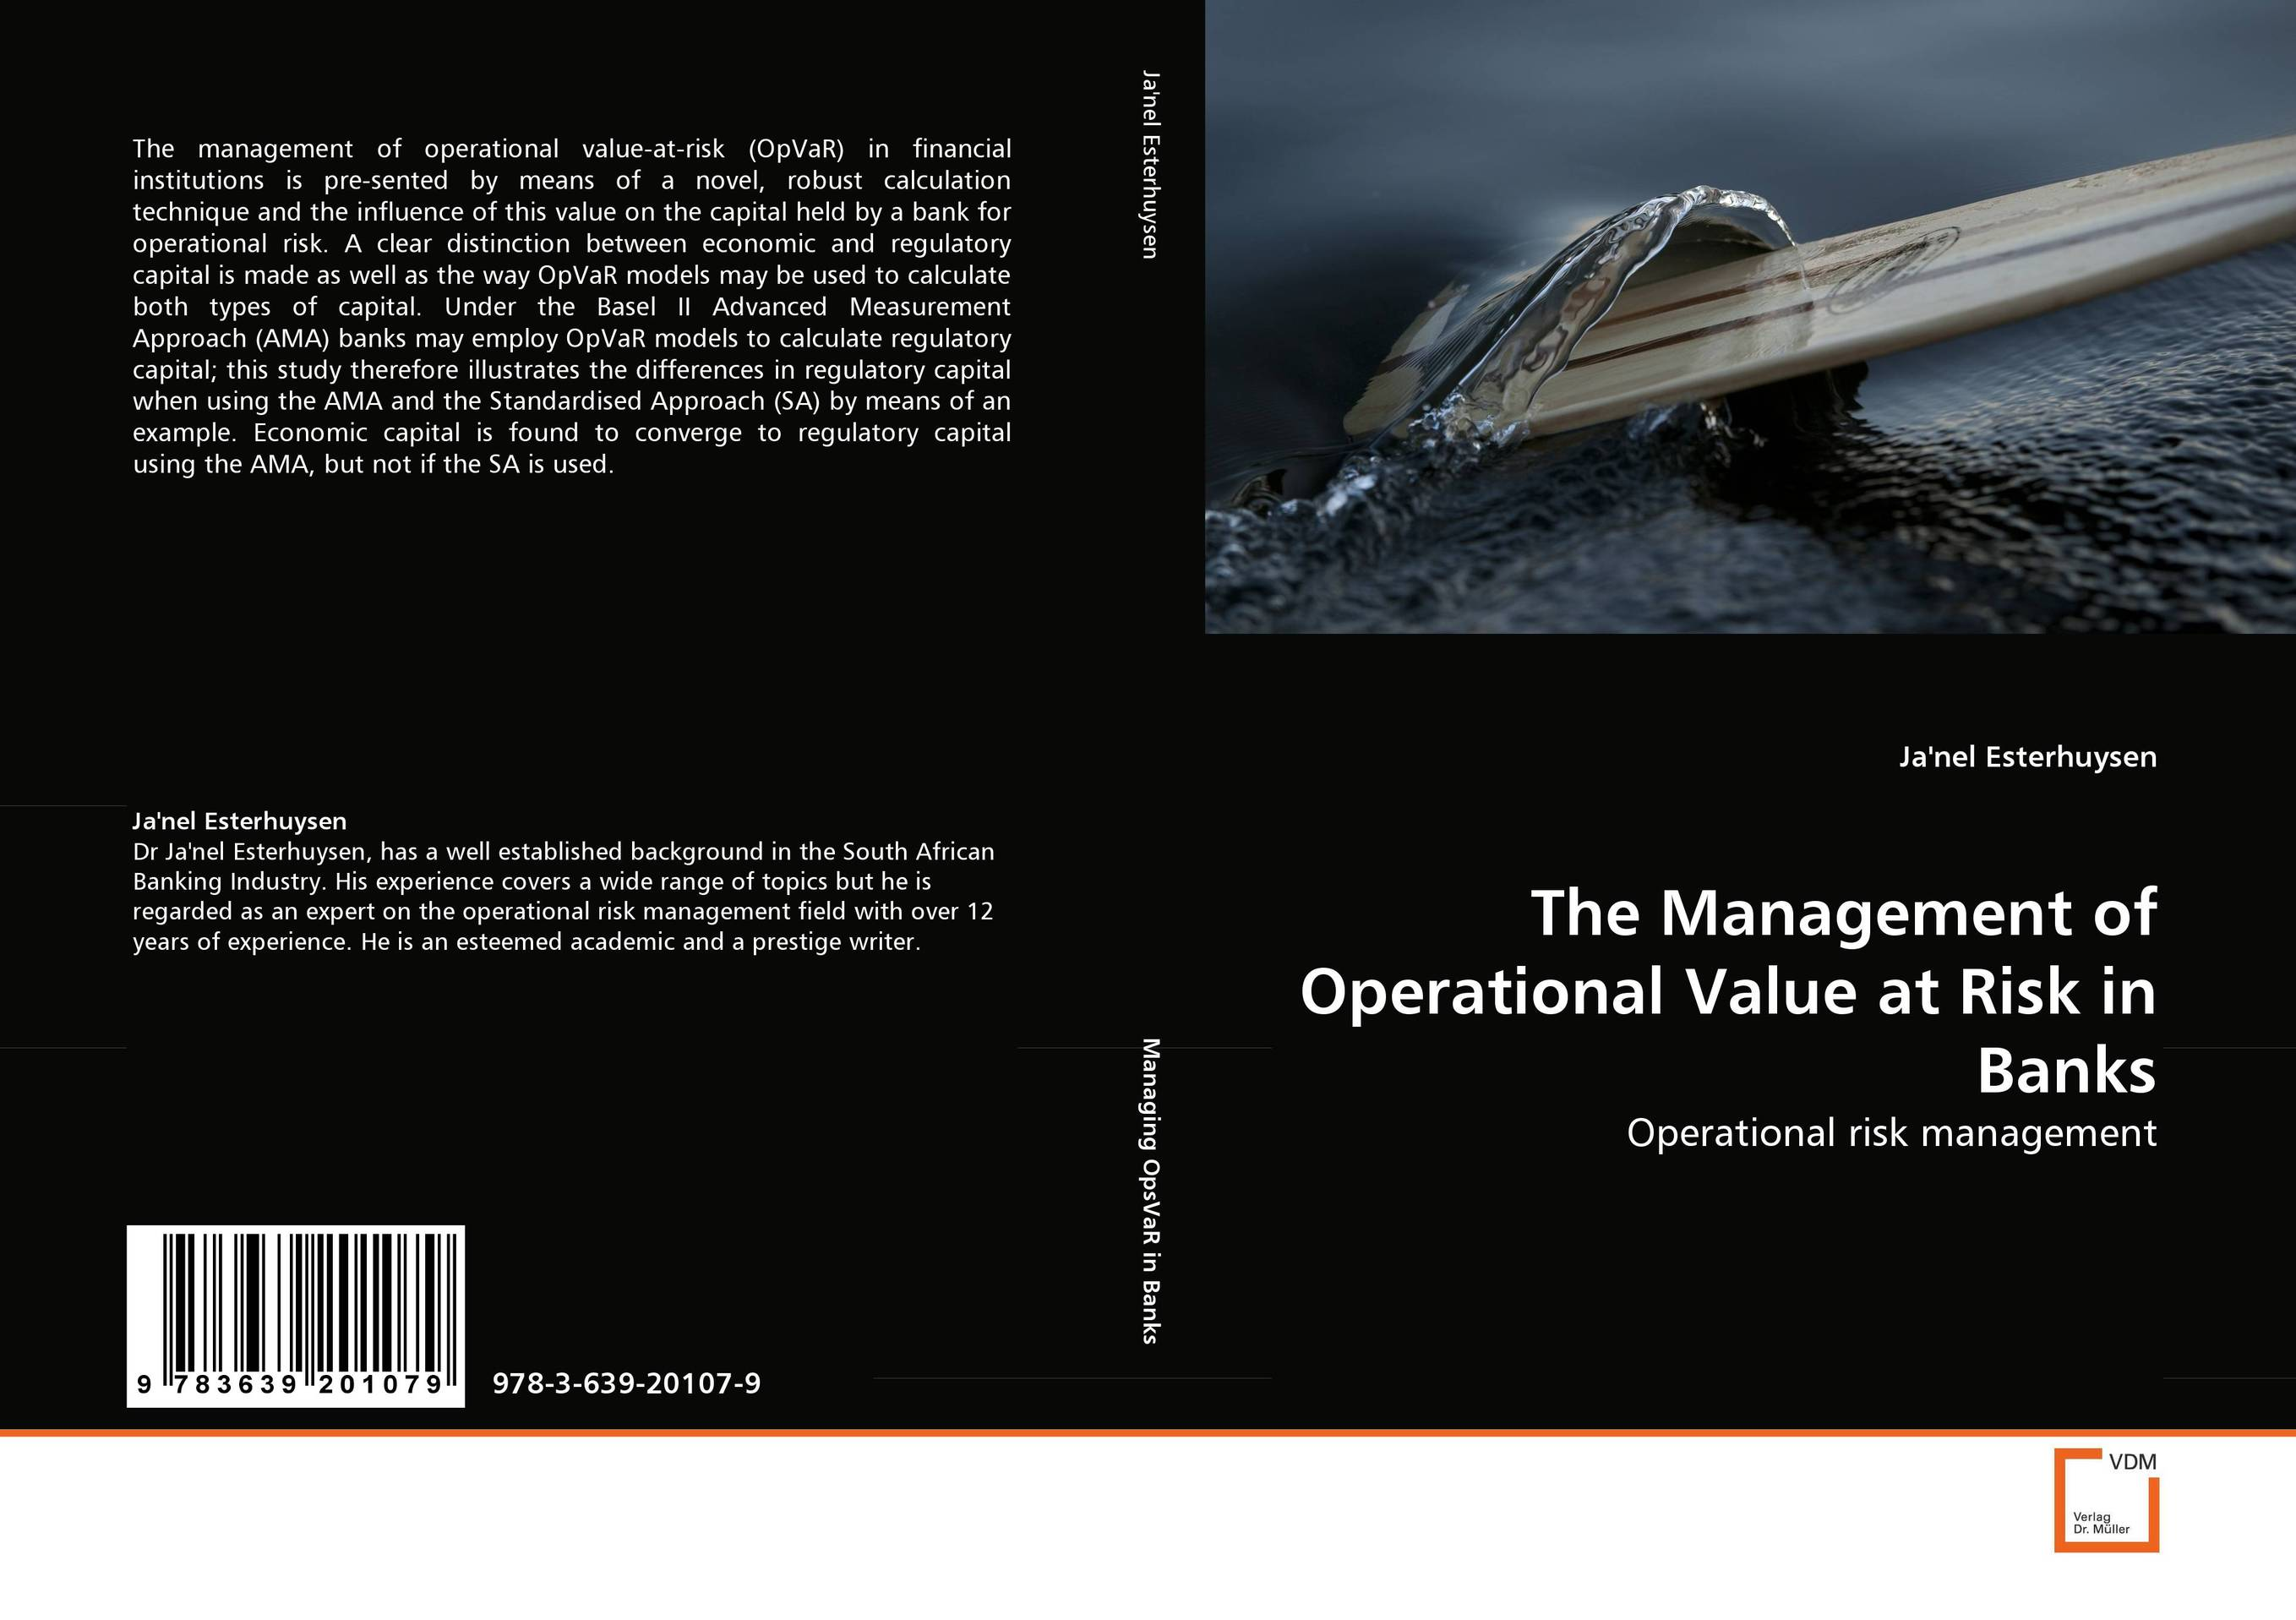 The Management of Operational Value at Risk in Banks sim segal corporate value of enterprise risk management the next step in business management